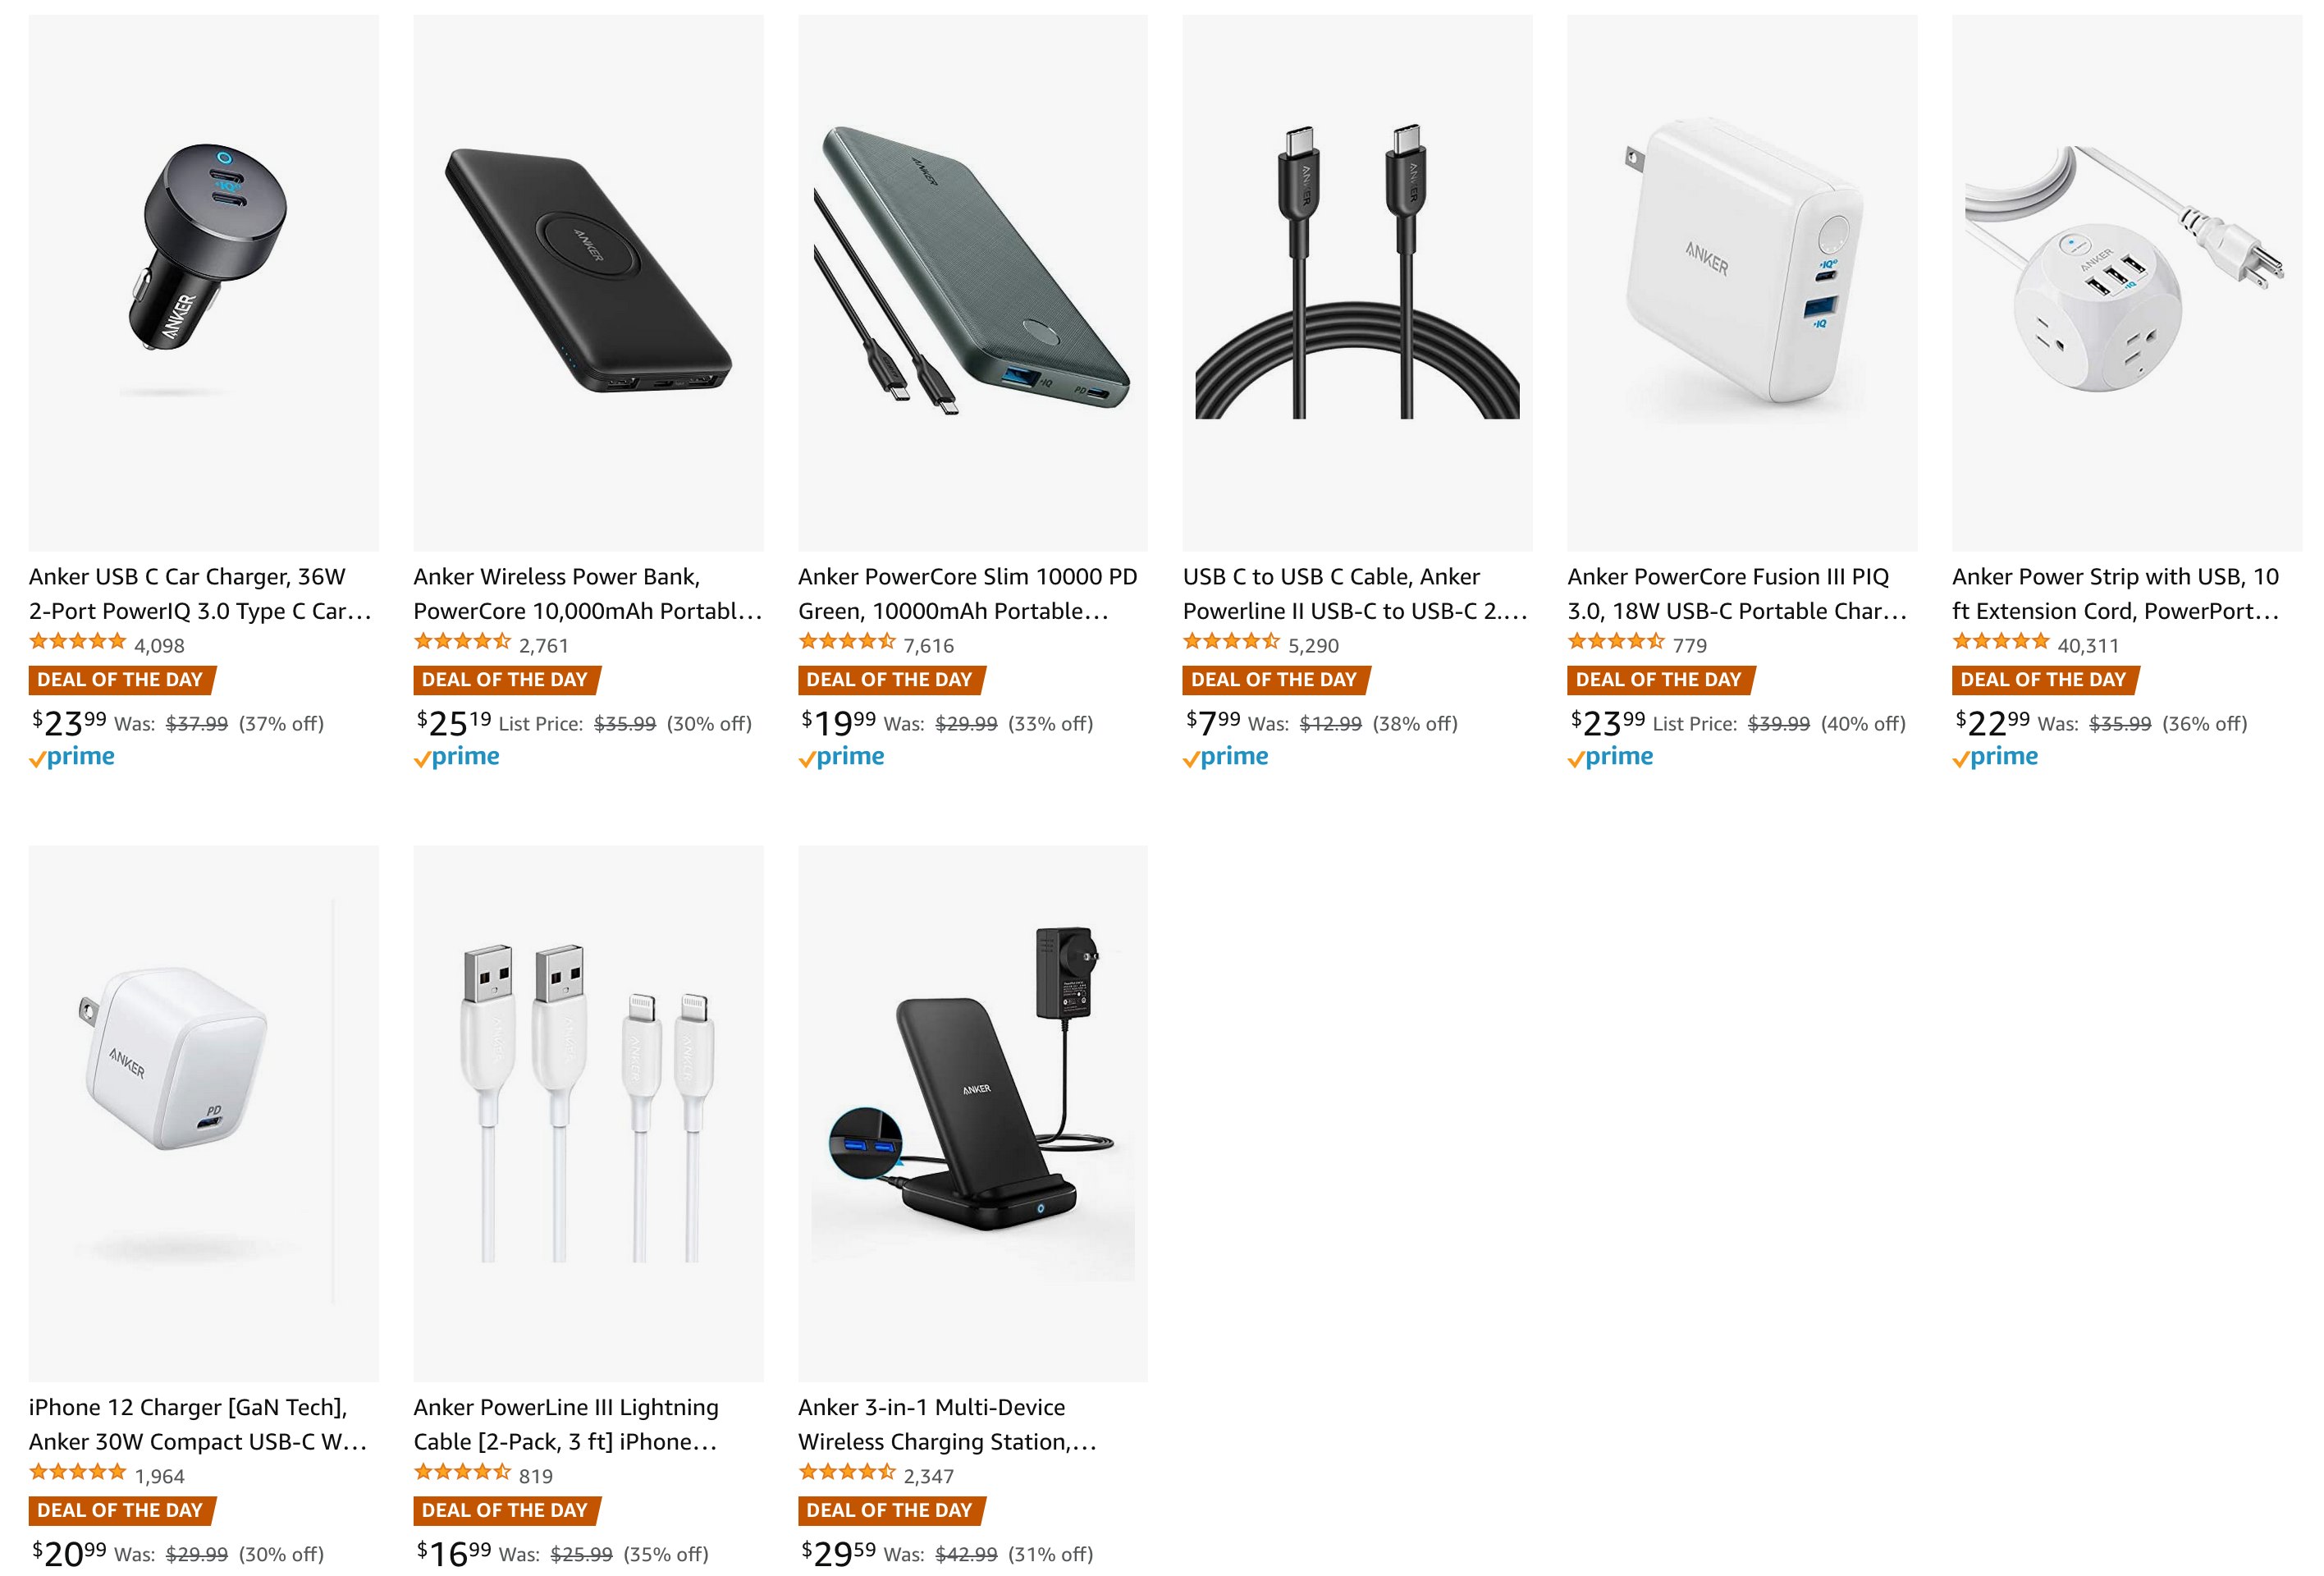 Save up to 40% on Anker Products